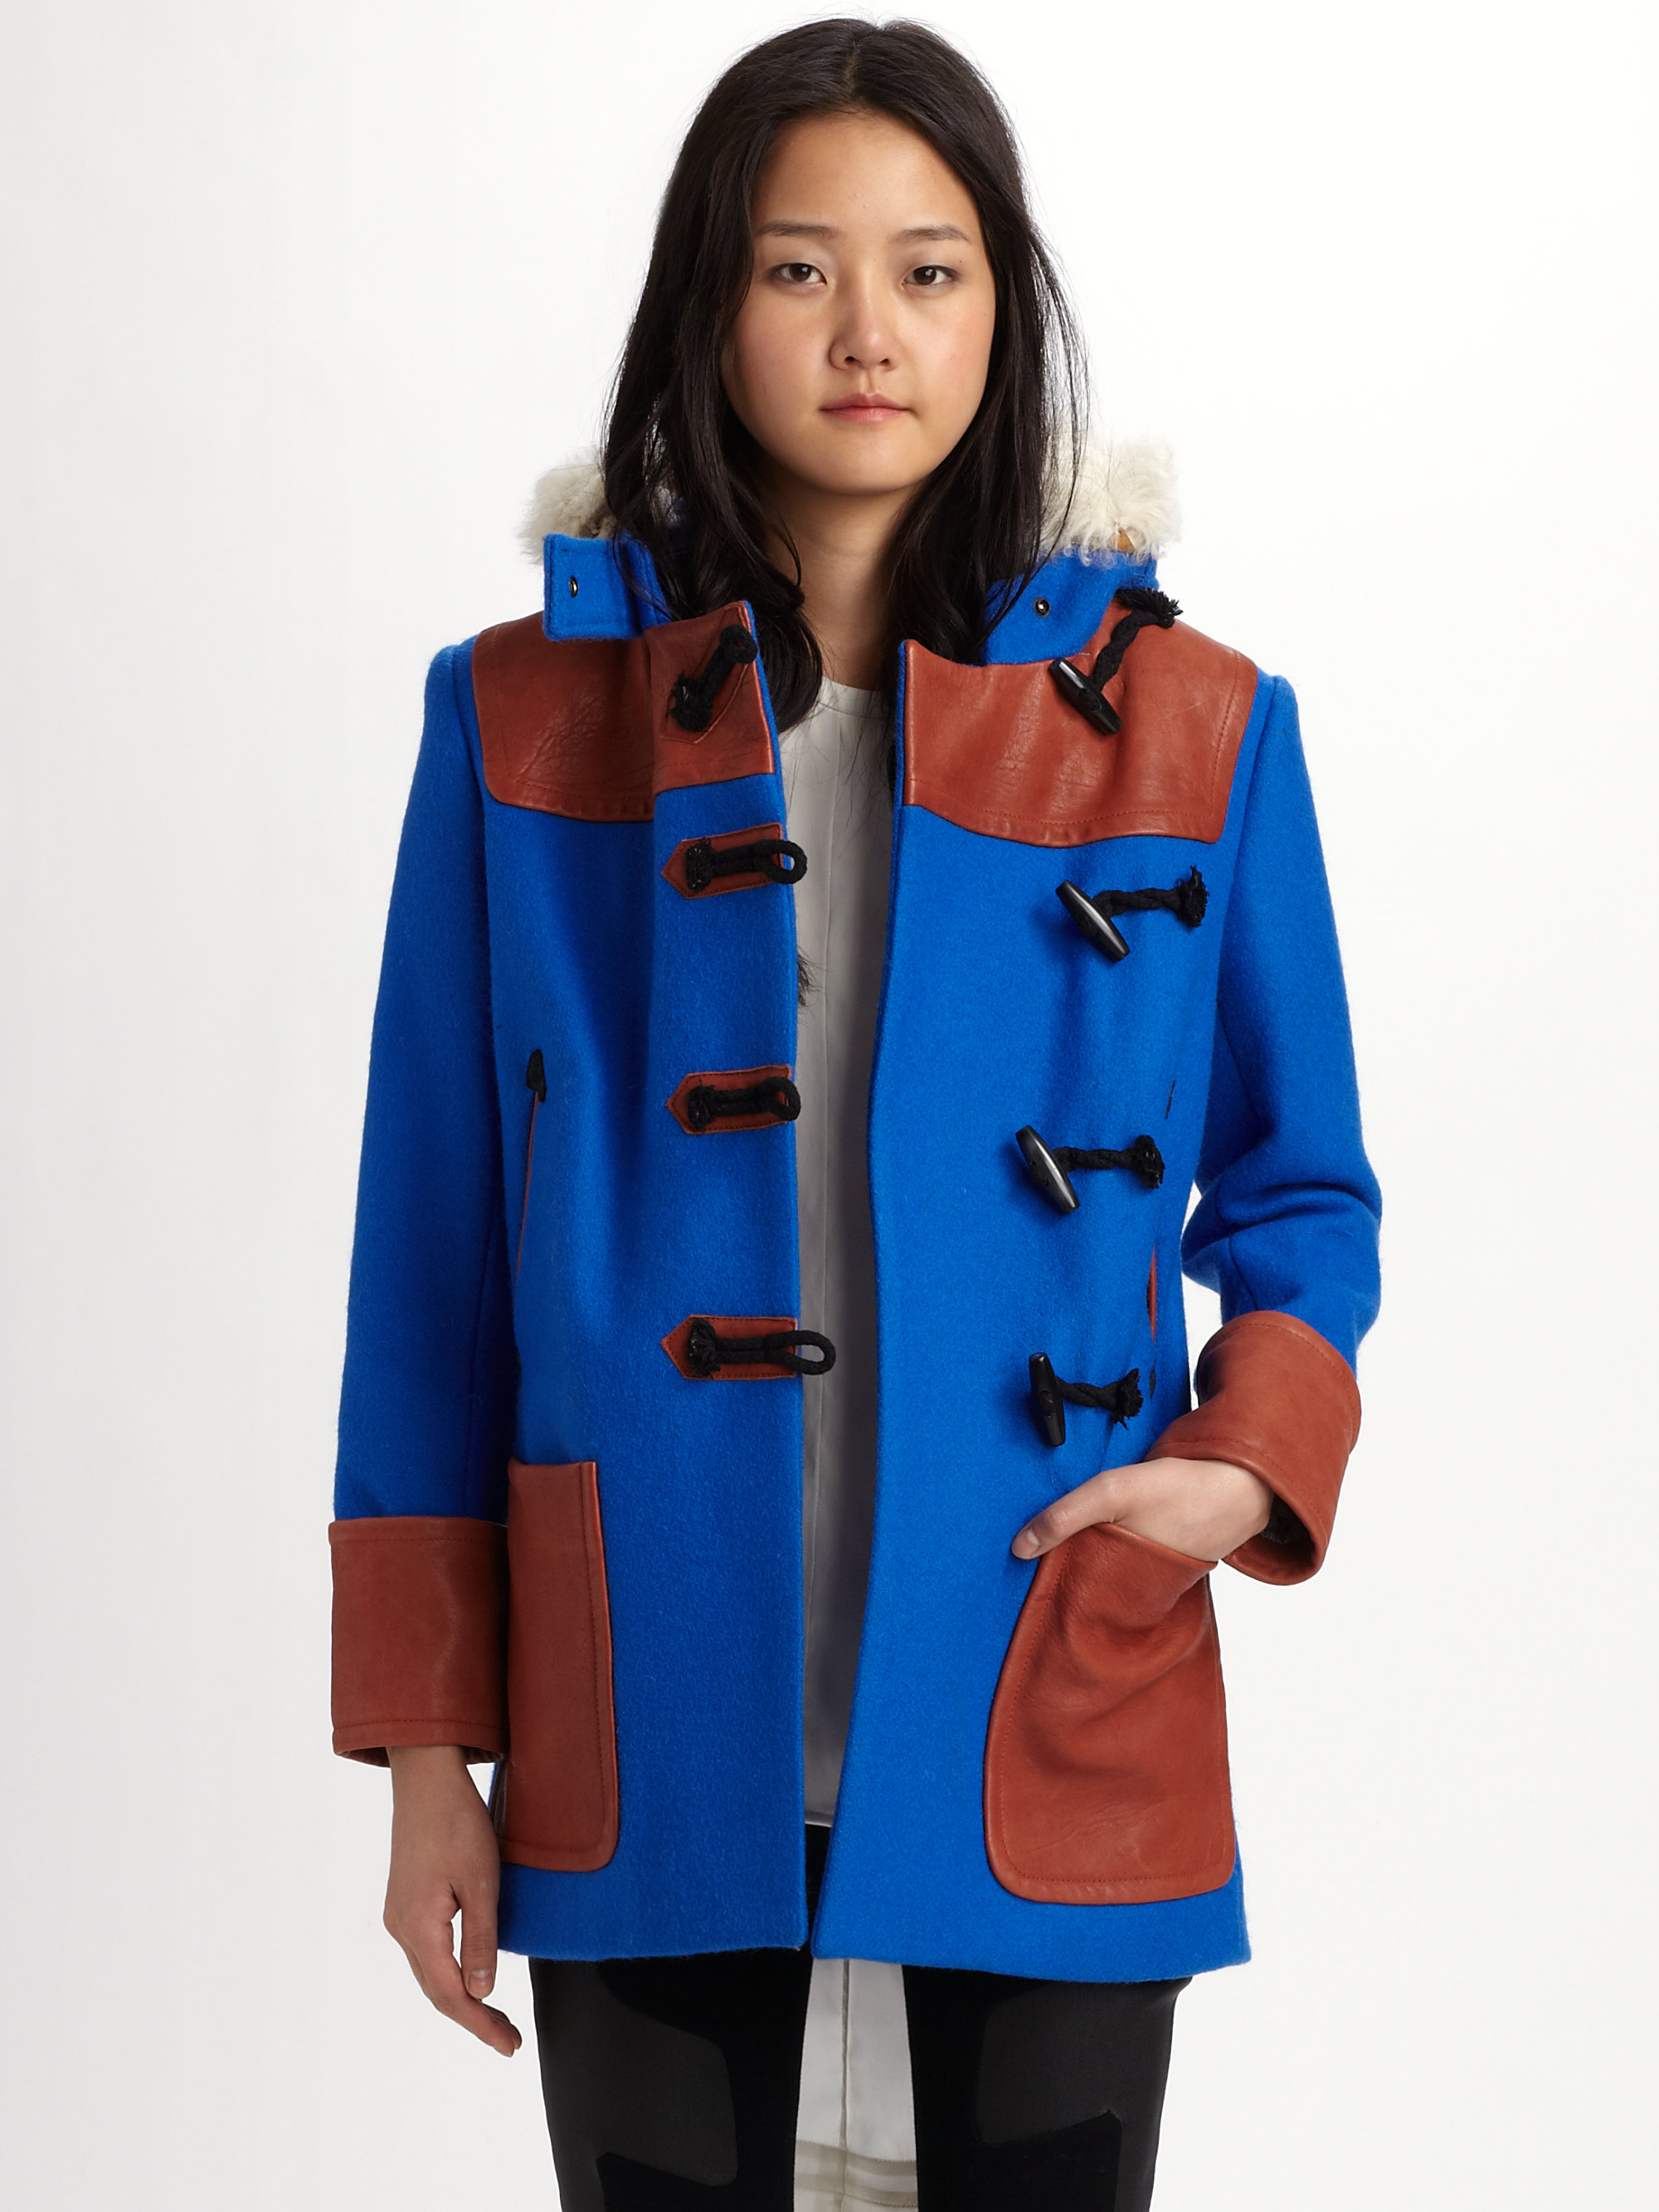 Rag & bone Duffle Coat in Blue | Lyst